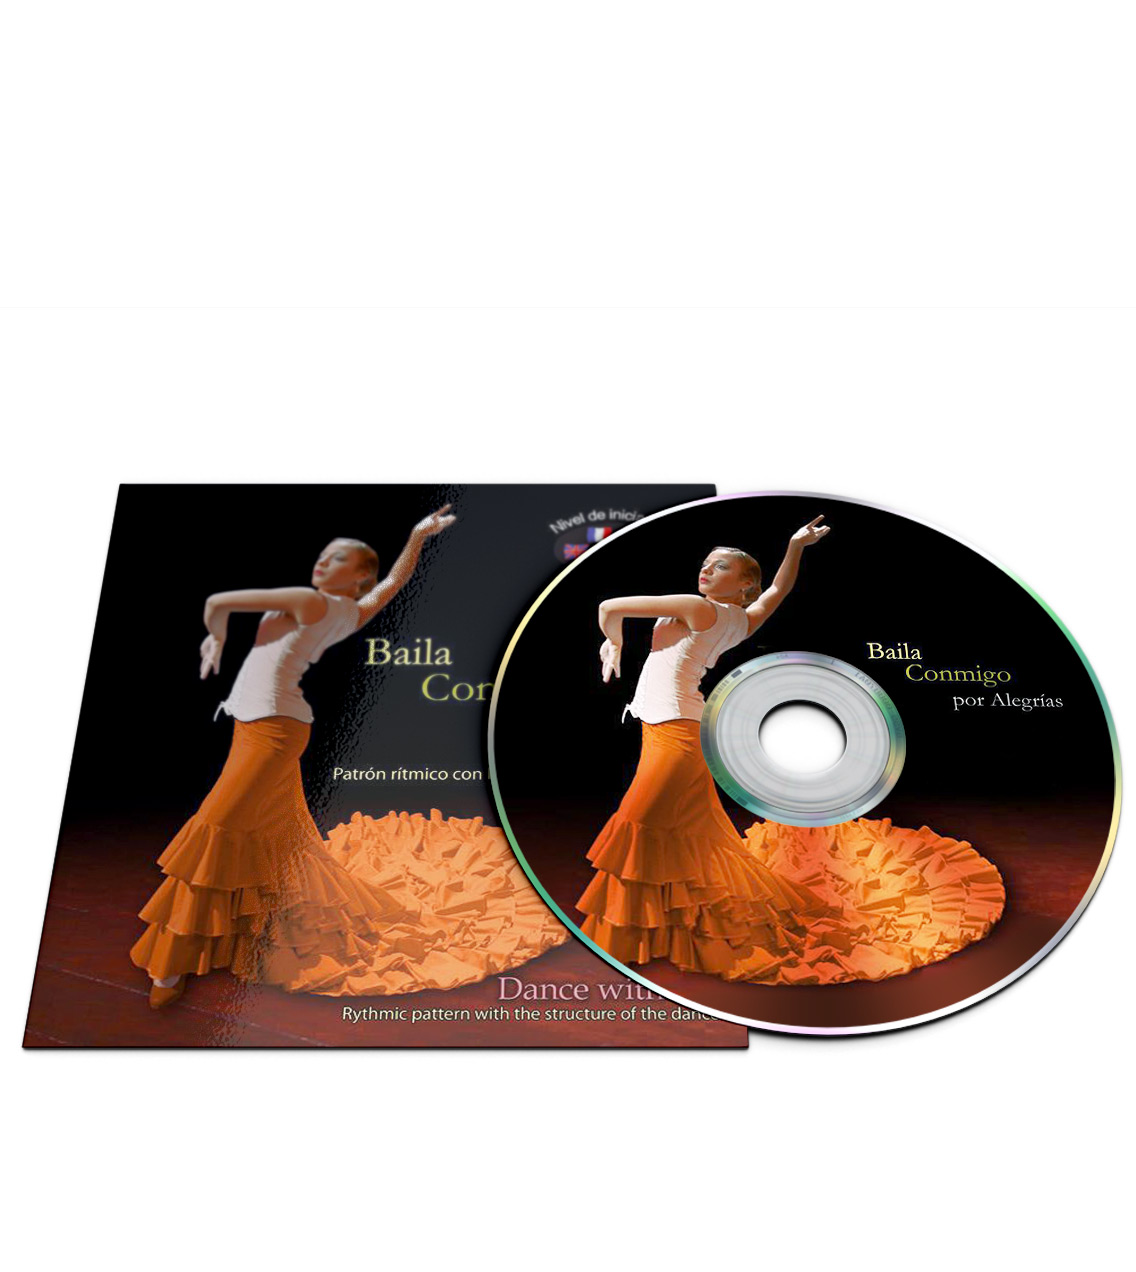 Flamenco dance CD for Alegrías